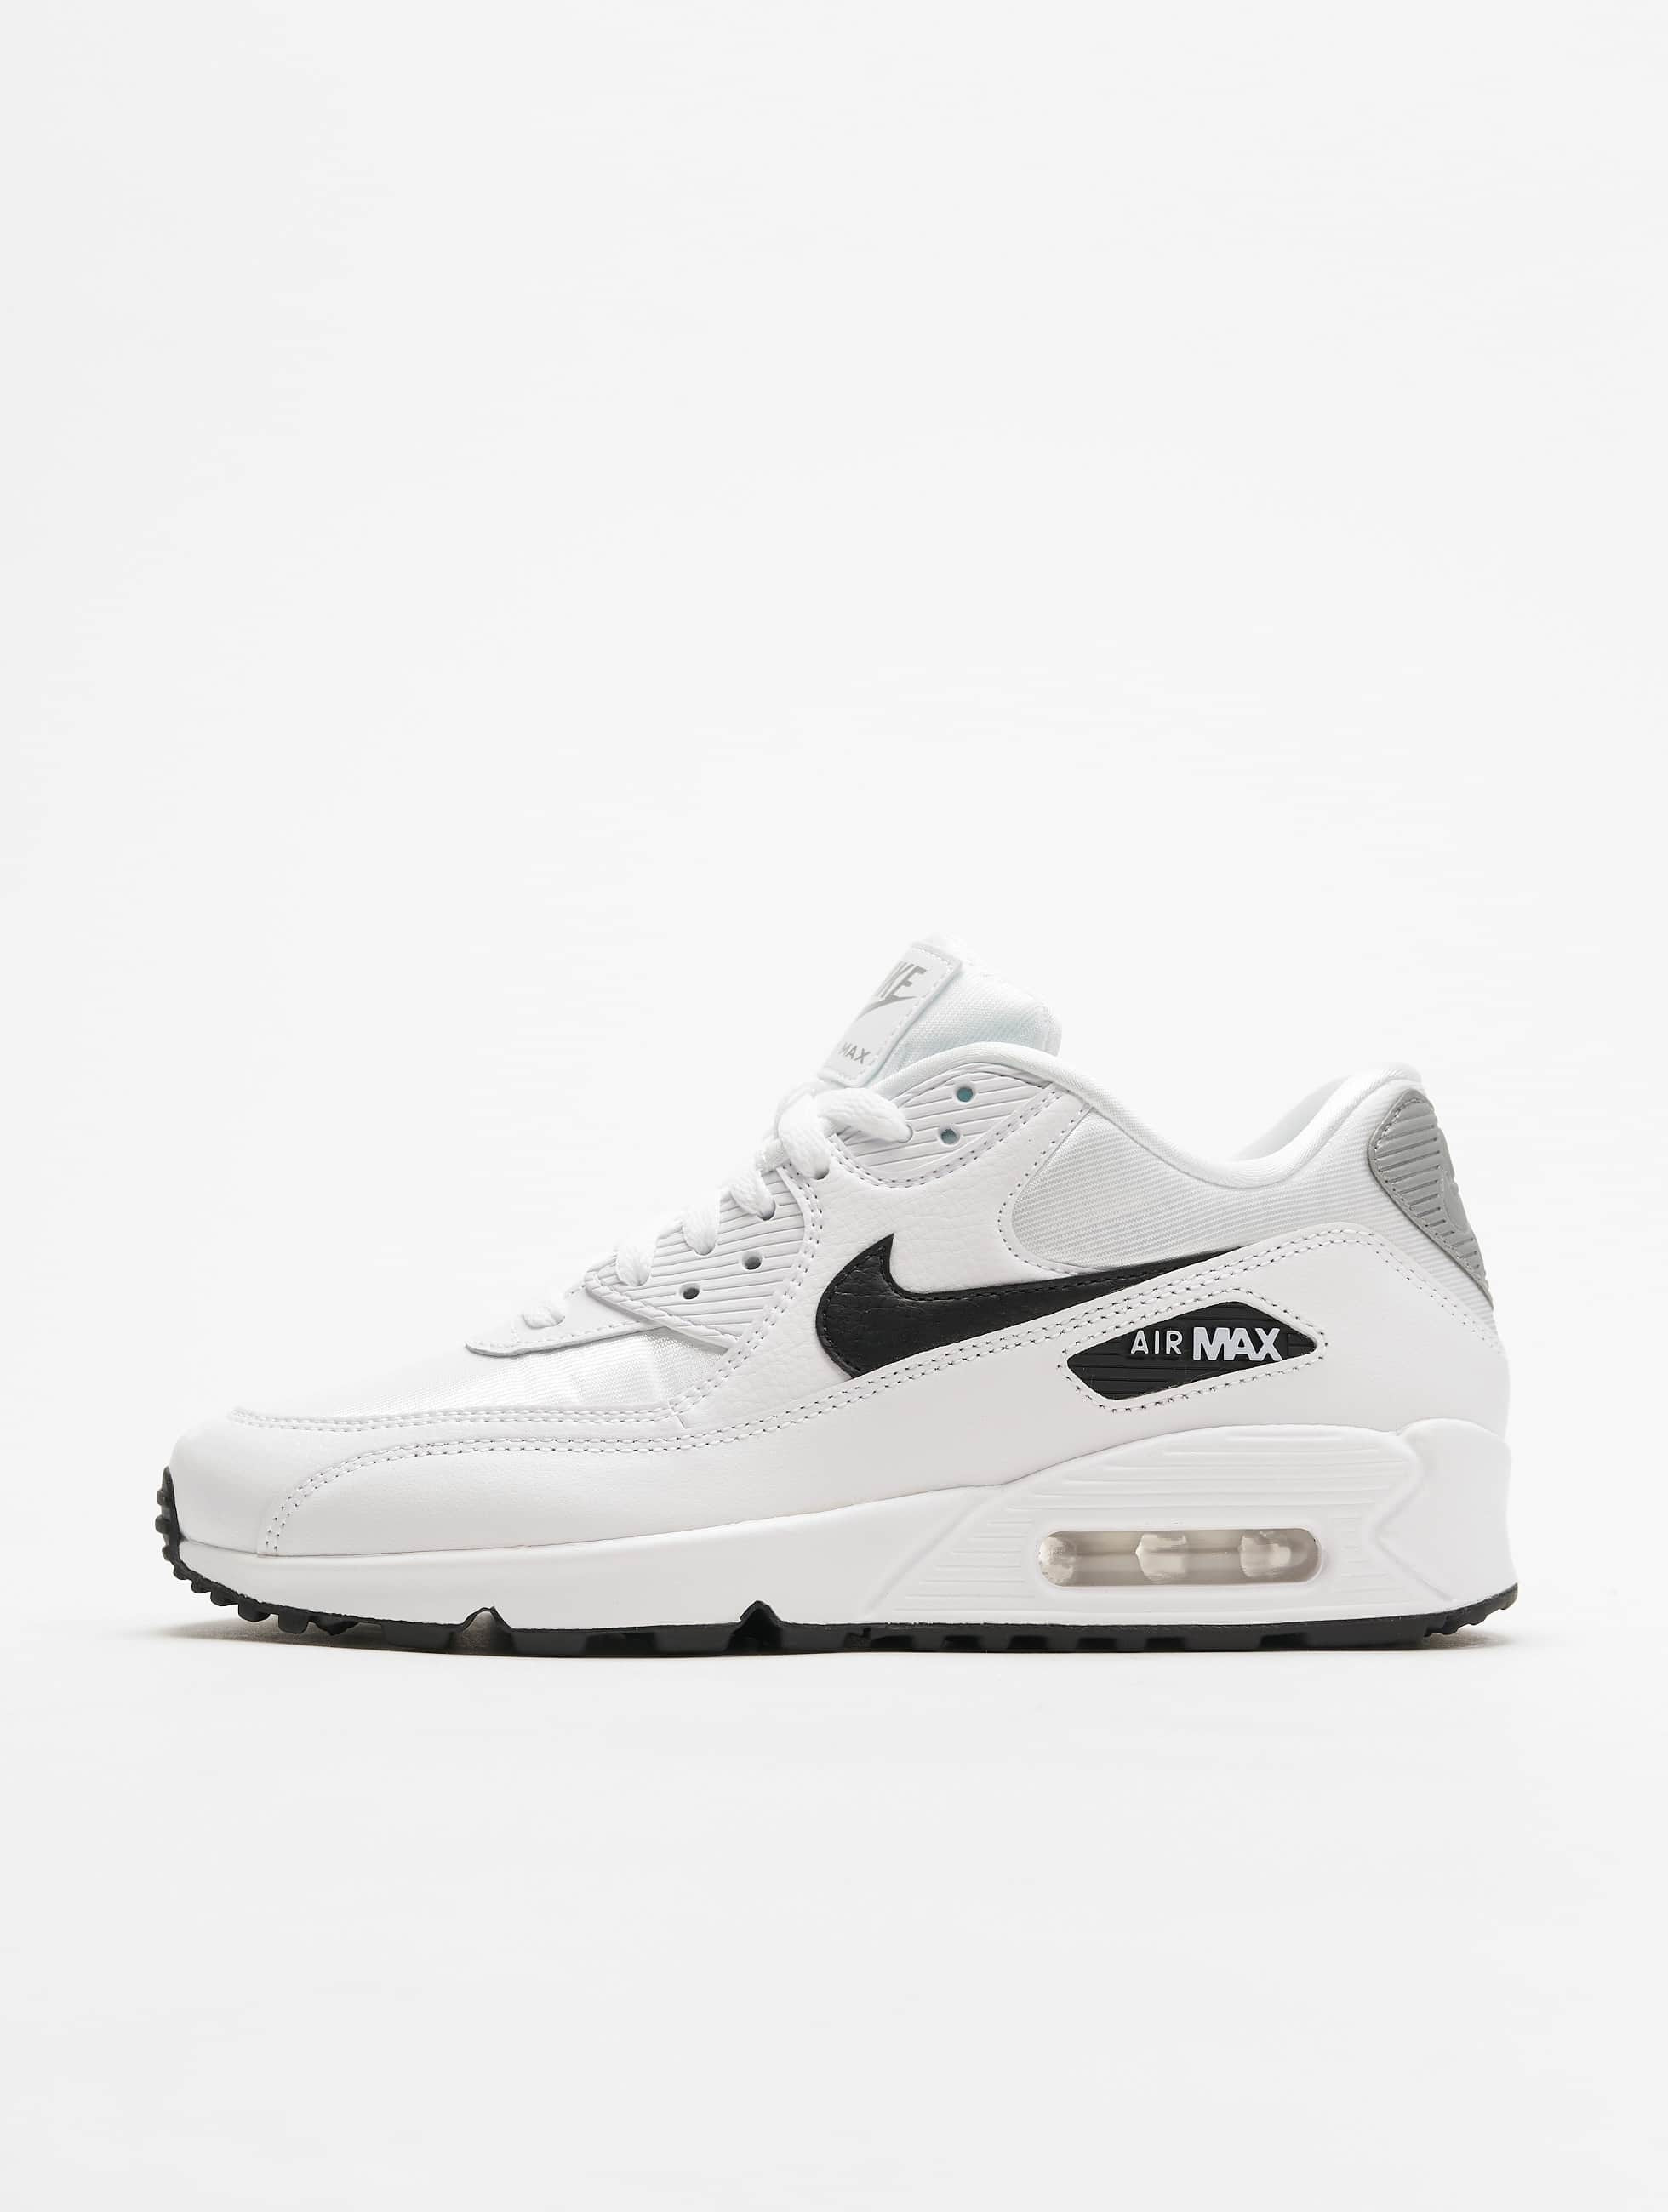 nike air max 90 zwart wit dames sneakers | Sneakers